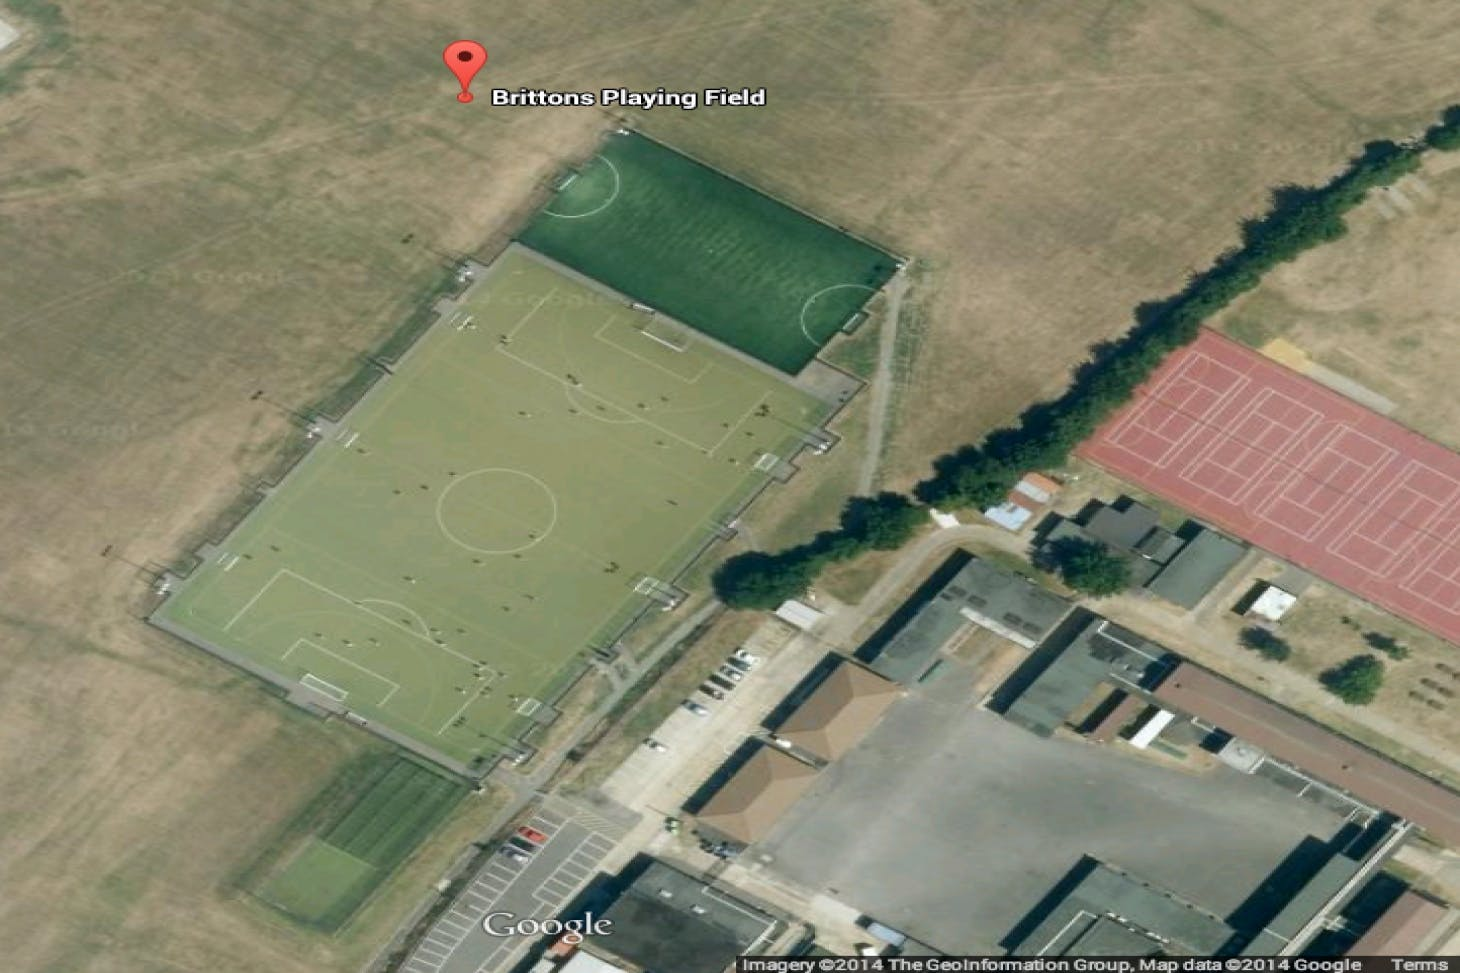 Brittons Playing Field 11 a side | Astroturf football pitch